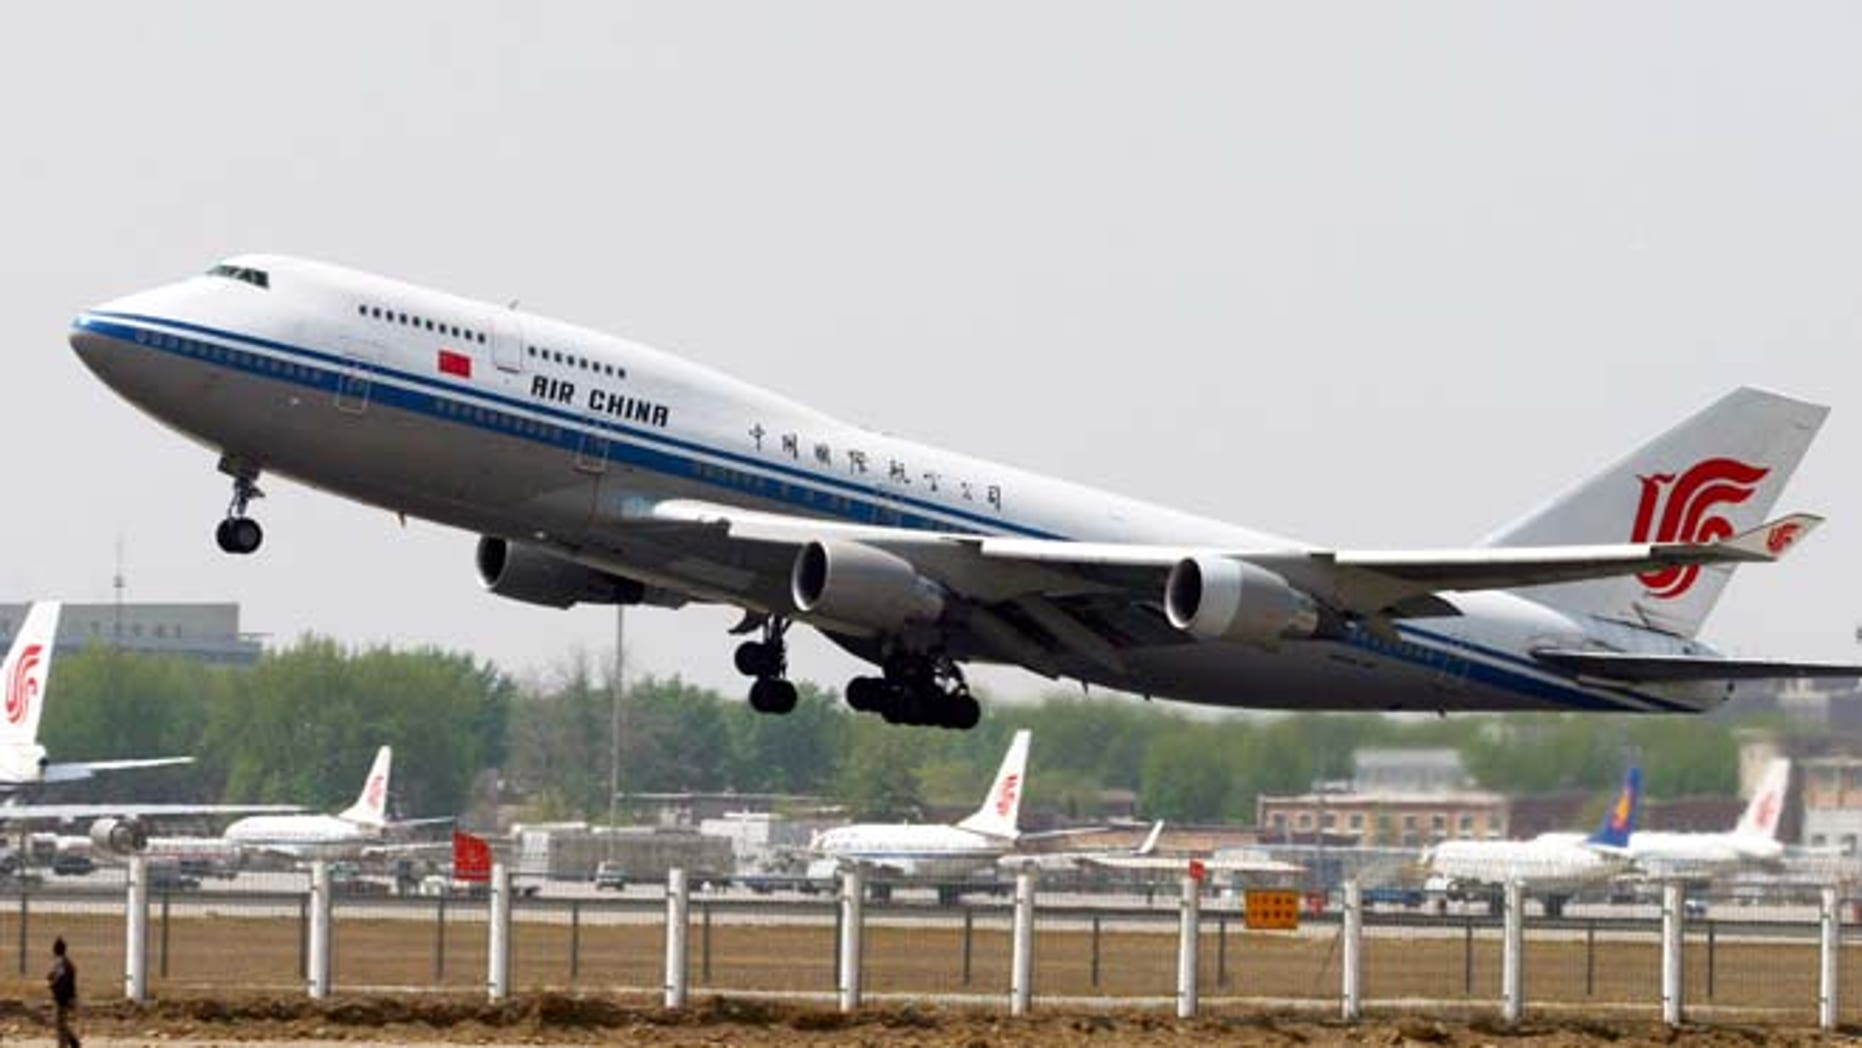 FILE 2006: An Air China Boeing 747 aircraft takes off from Beijing's international airport.